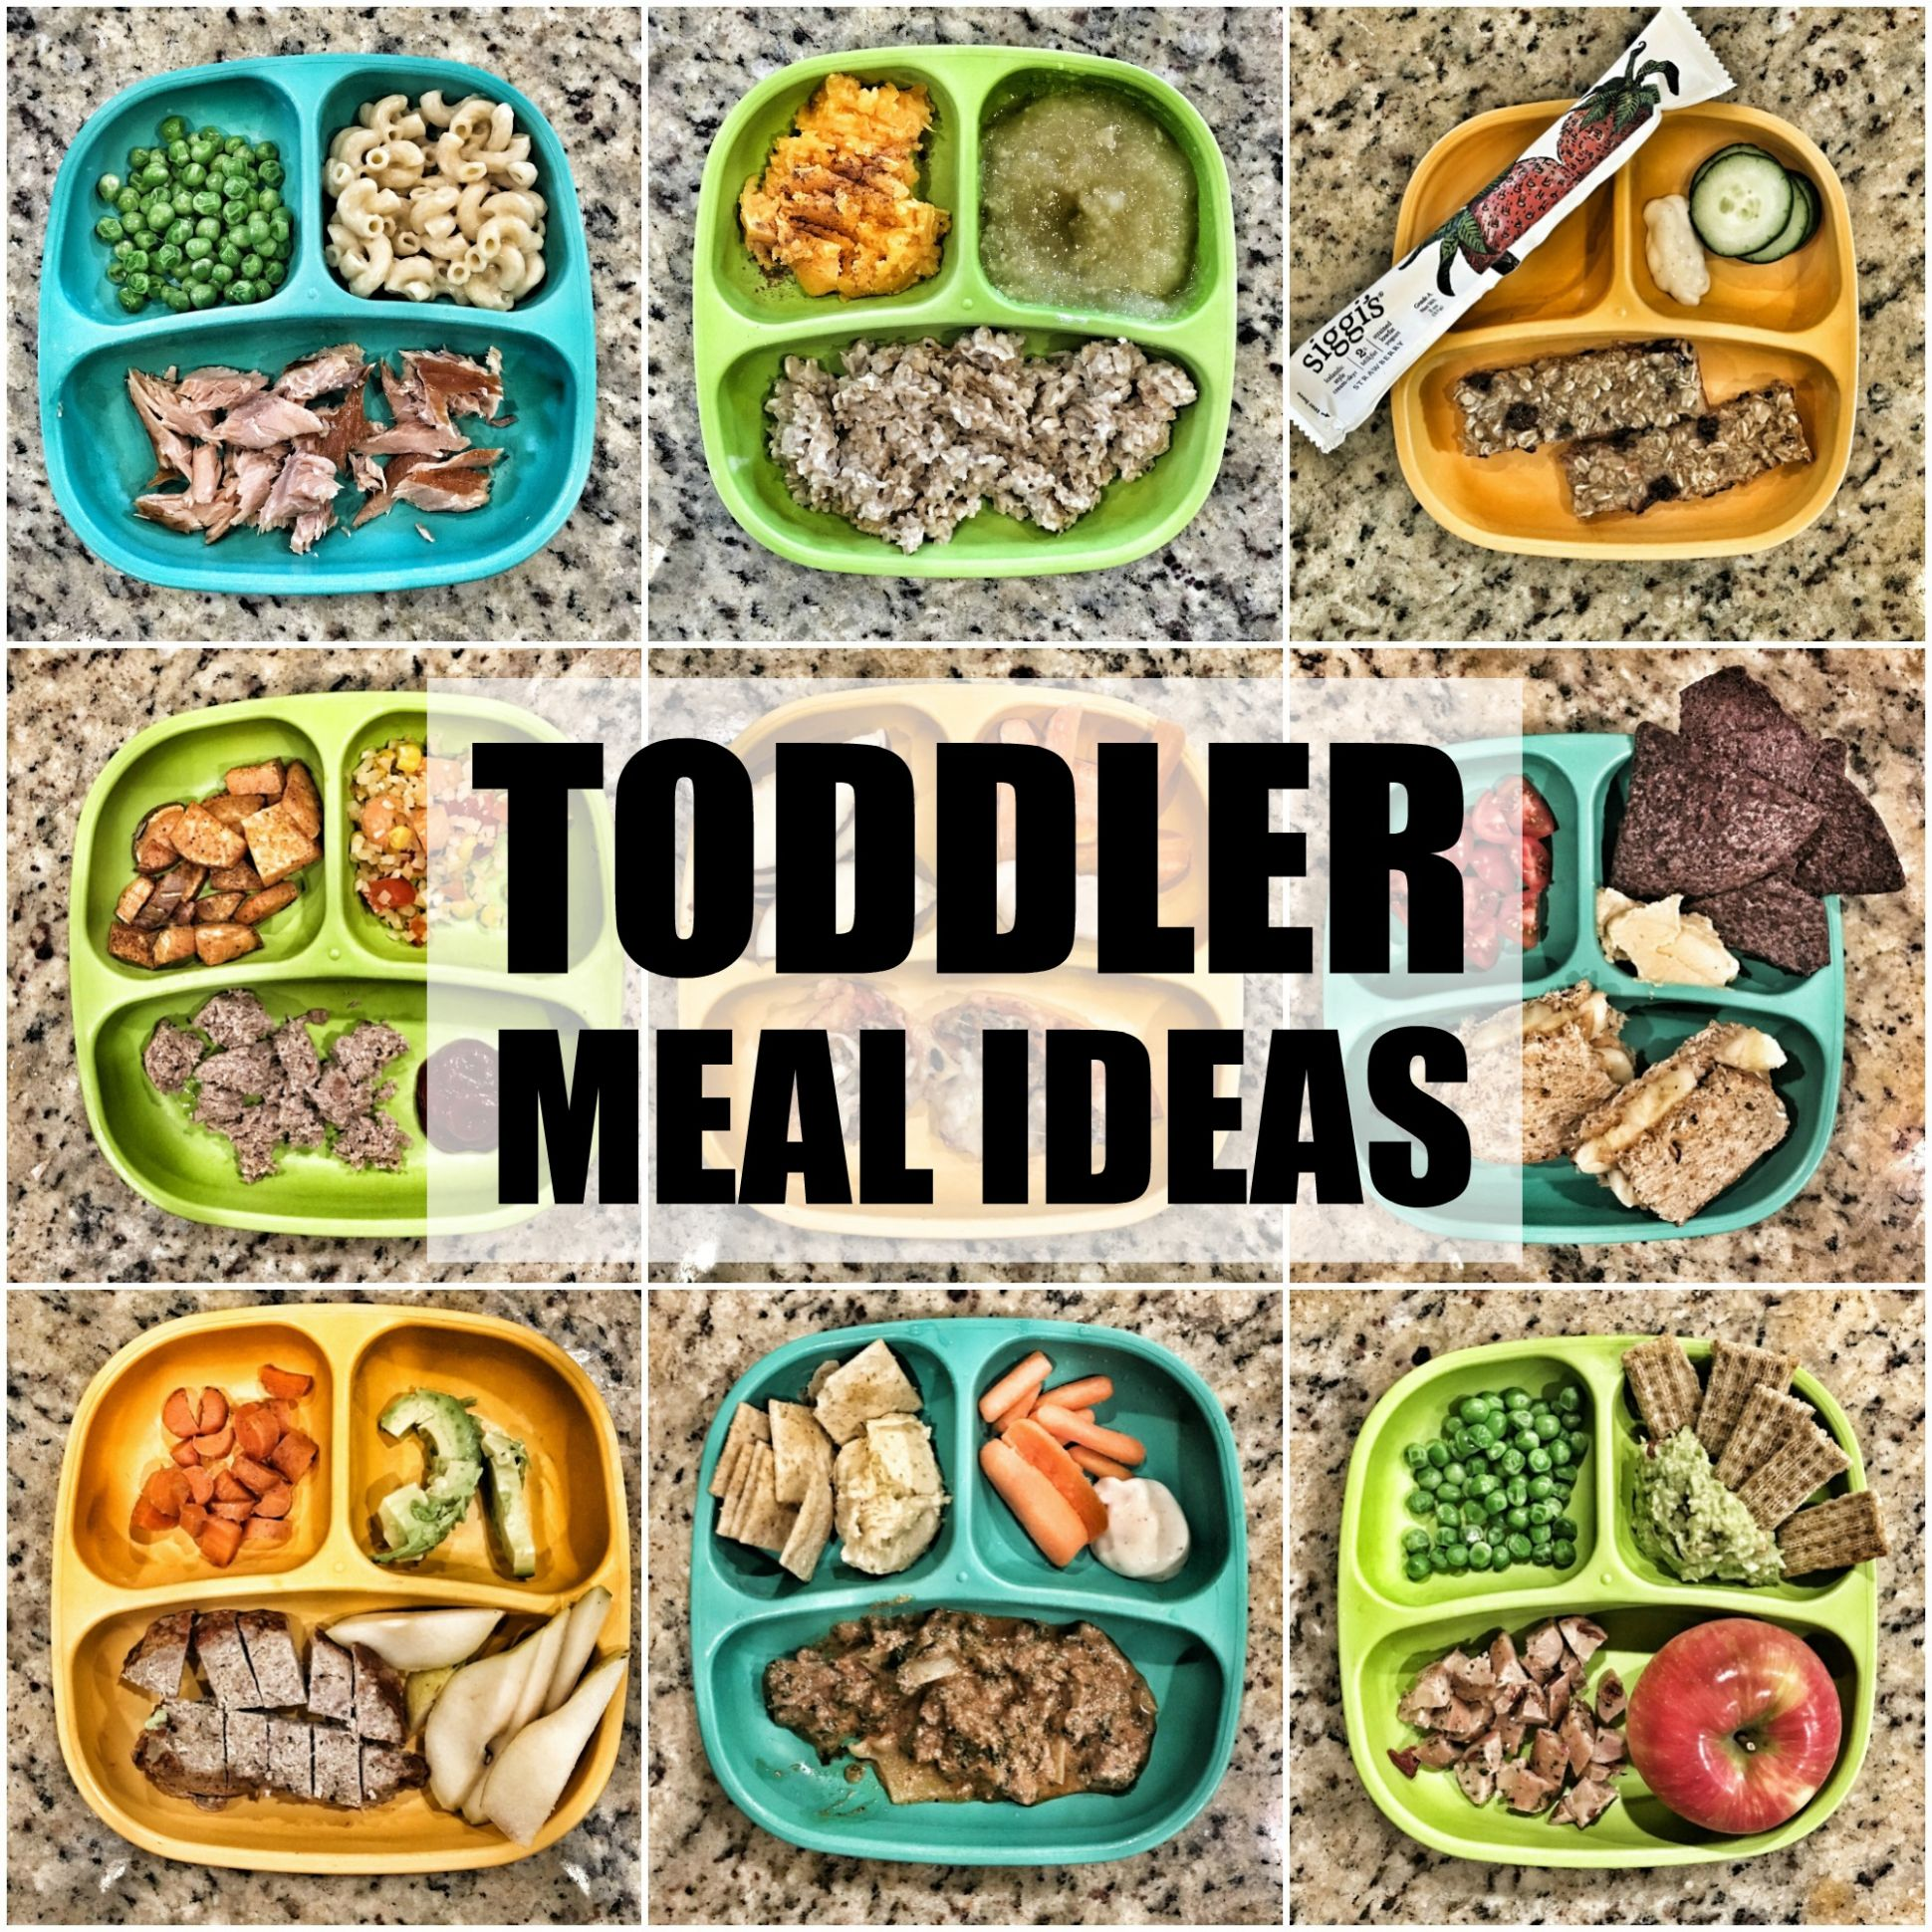 8+ Quick Toddler Meal Ideas - Simple Recipes To Make With Toddlers